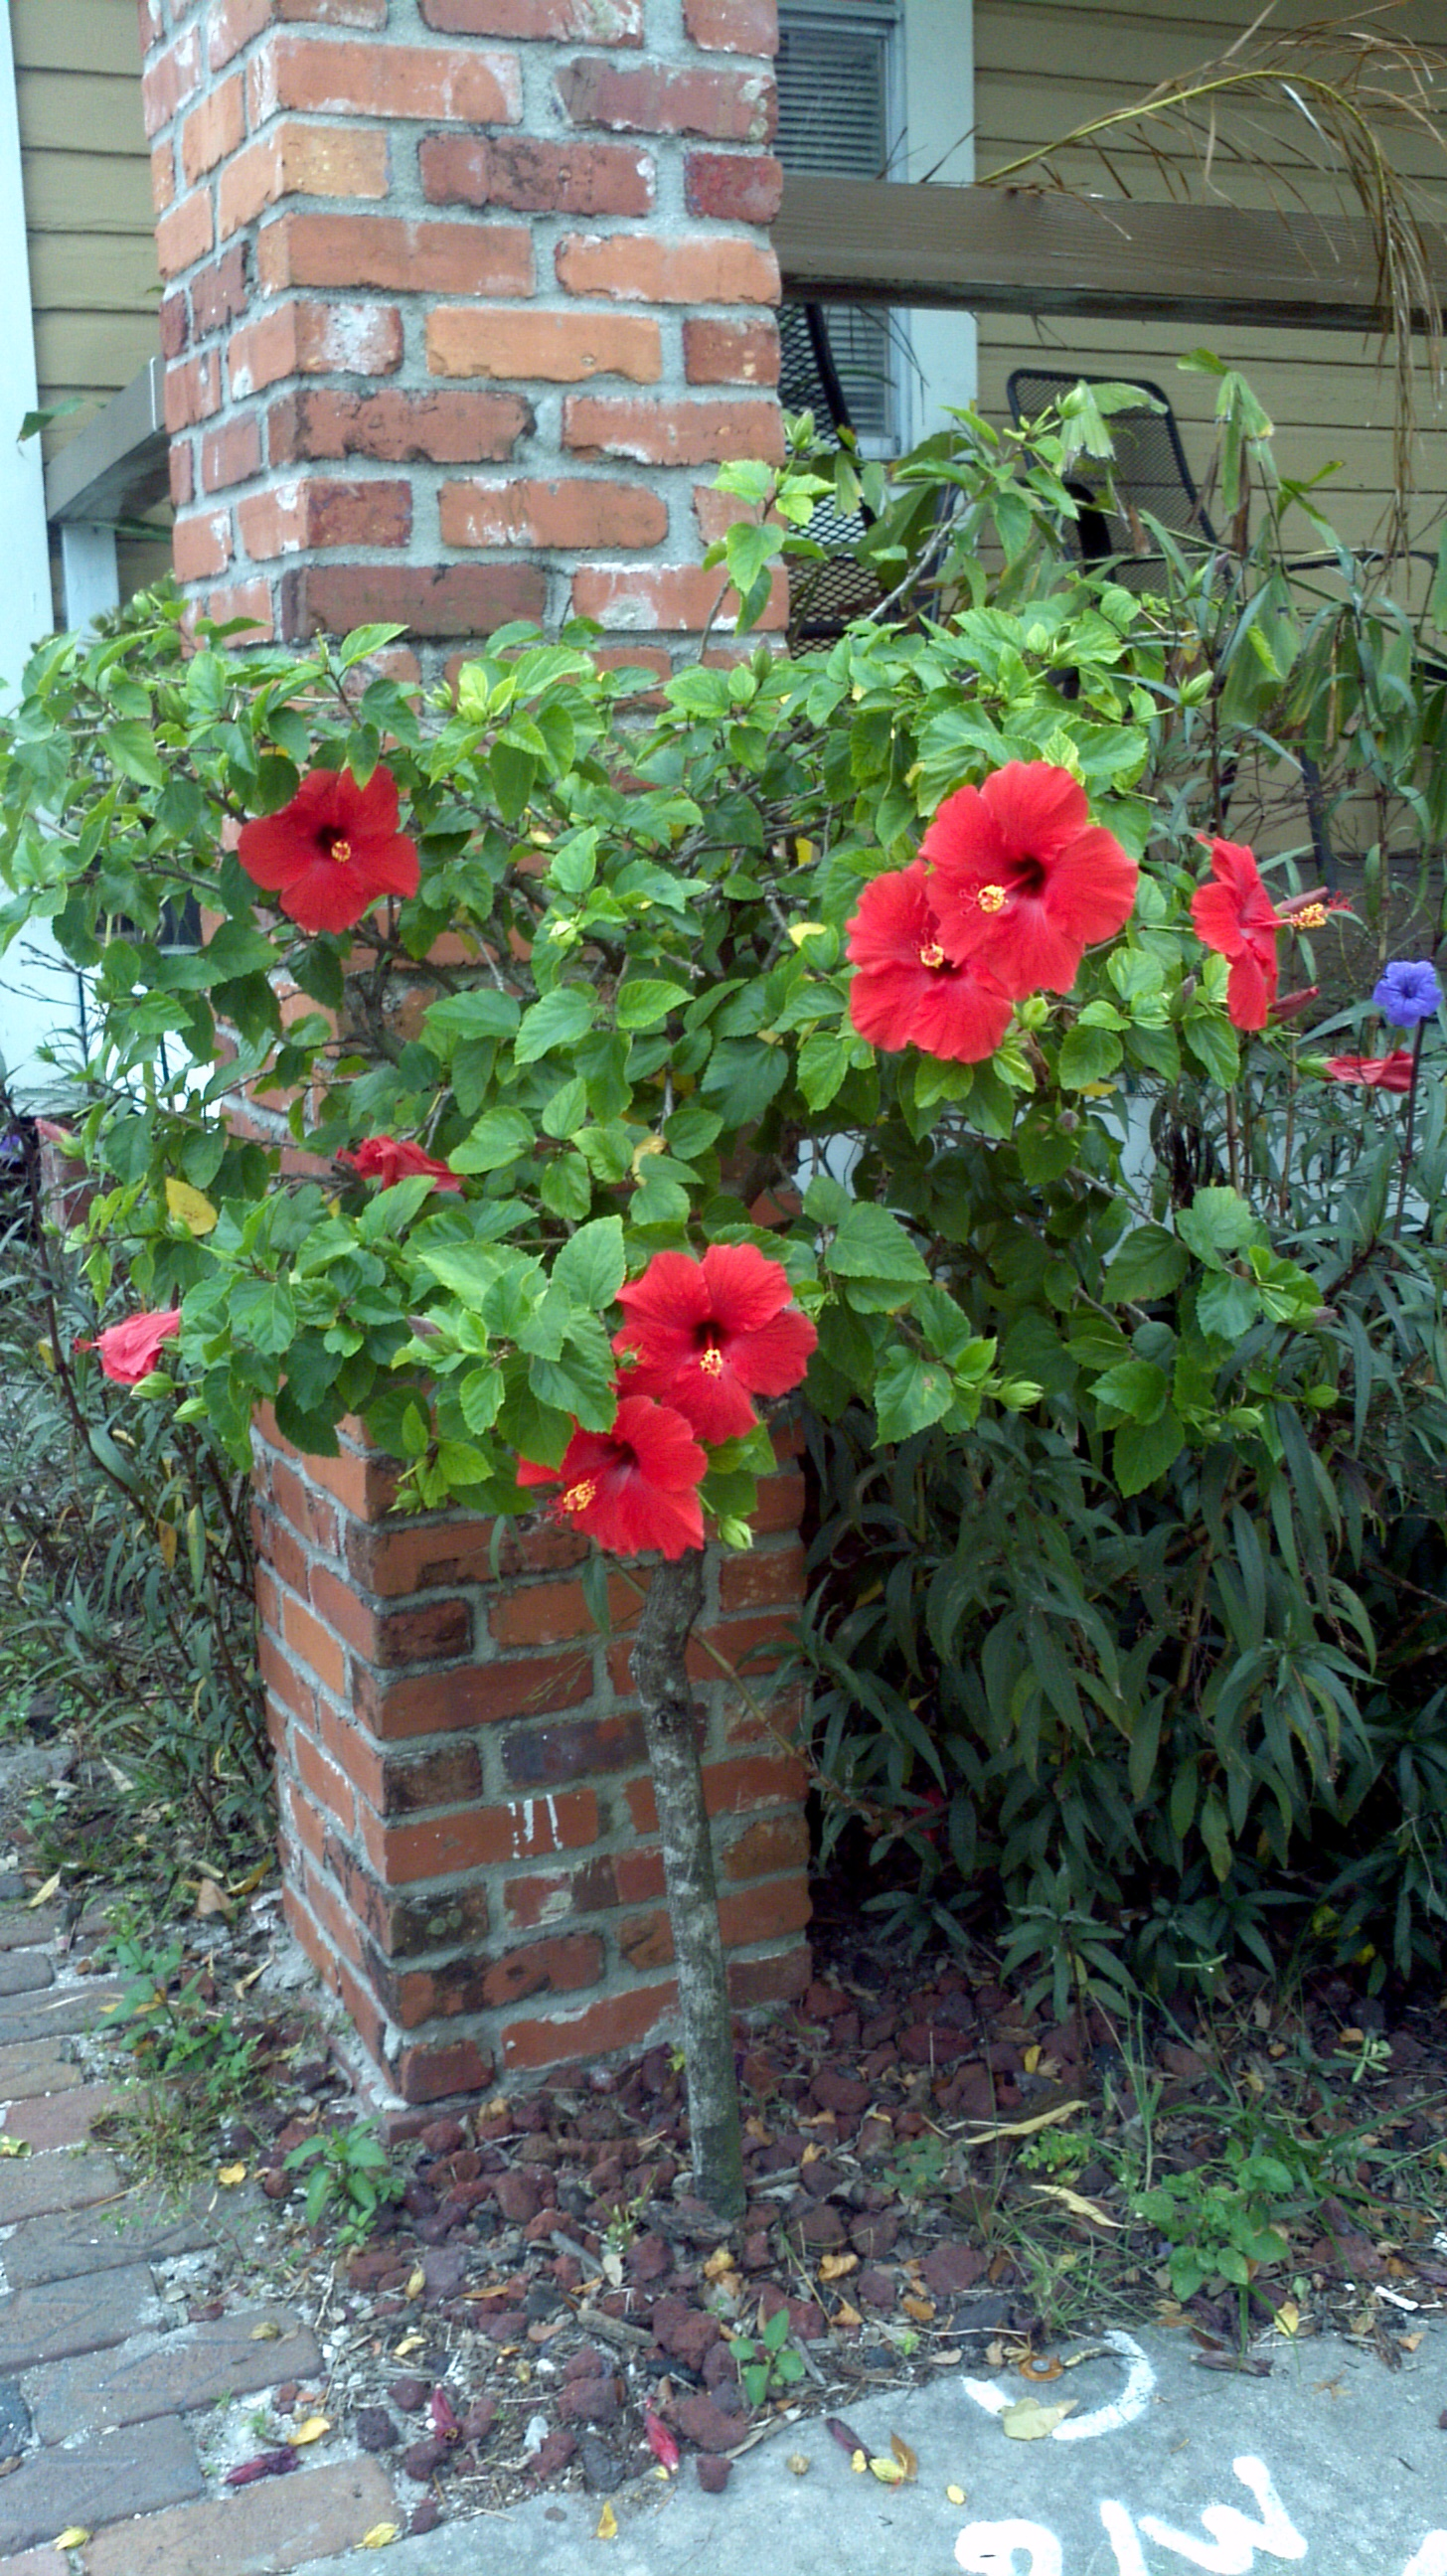 Buy hibiscus for sale in miami kendall ft lauderdale hibiscus izmirmasajfo